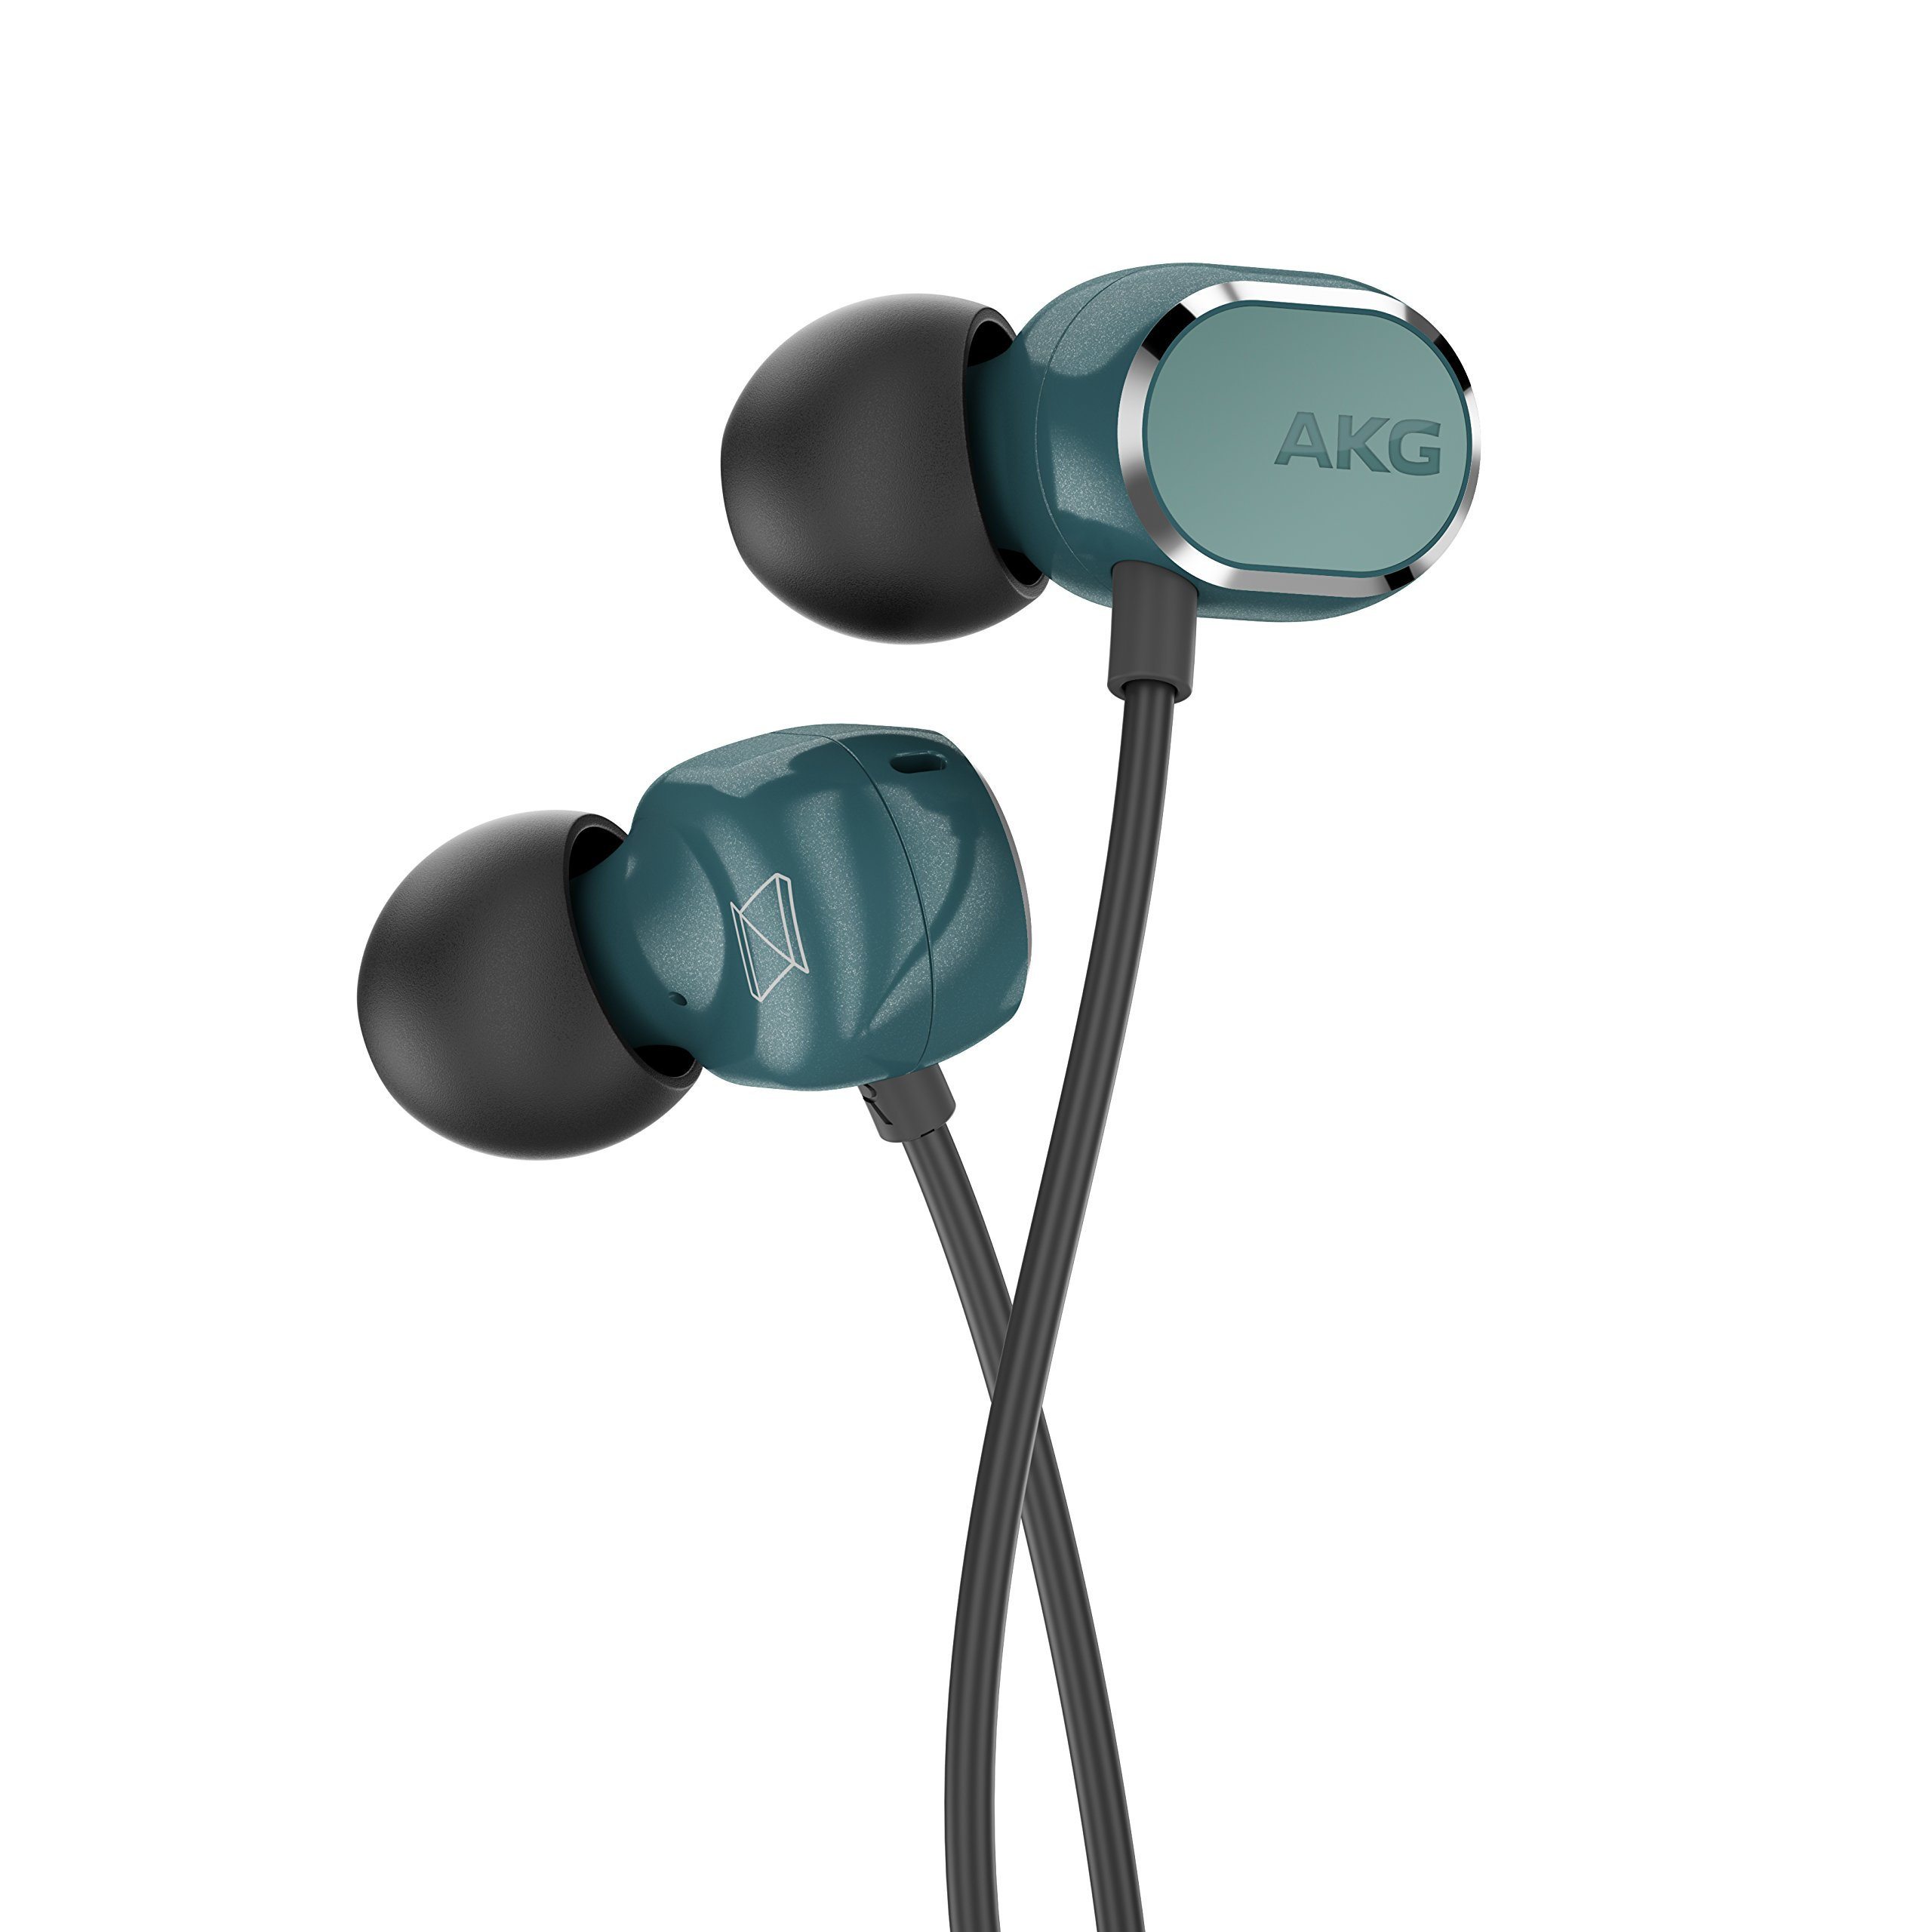 AKG N25(Canal type earphone/High res/Dual dynamic type)【For Android / with remote control microphone with changeover switch for iOS】AKGN25TEL (Teal green)【Japanese domestic genuine】 by AKG